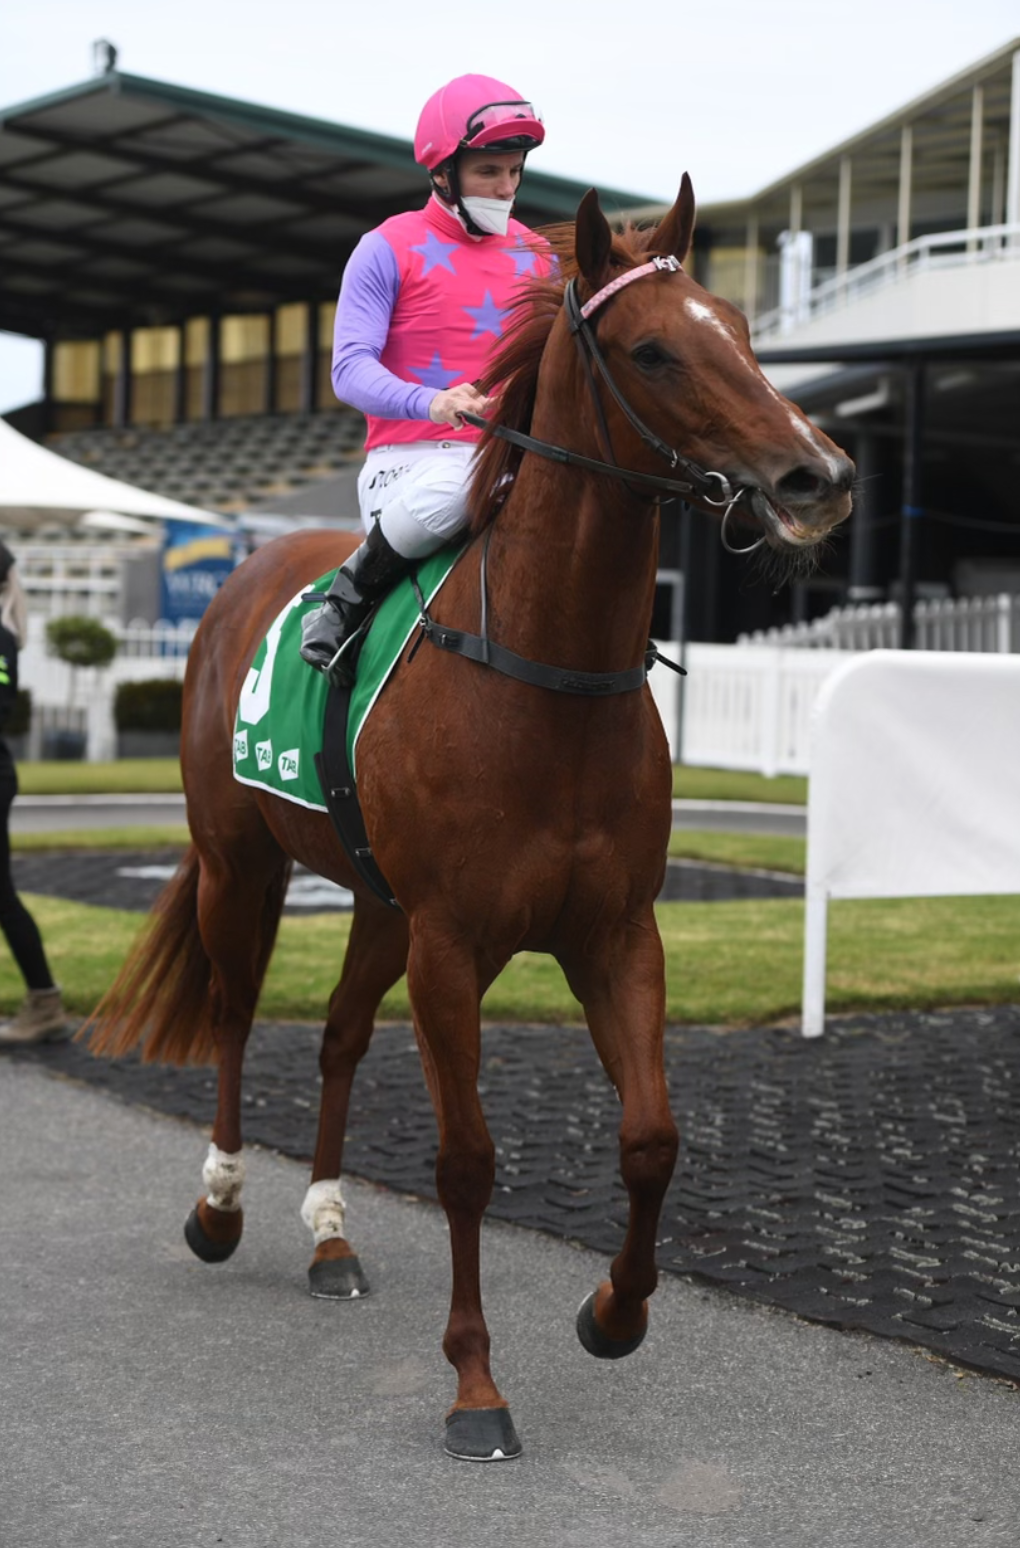 WAUGH'S FILLY PRETTY TO WATCH 4